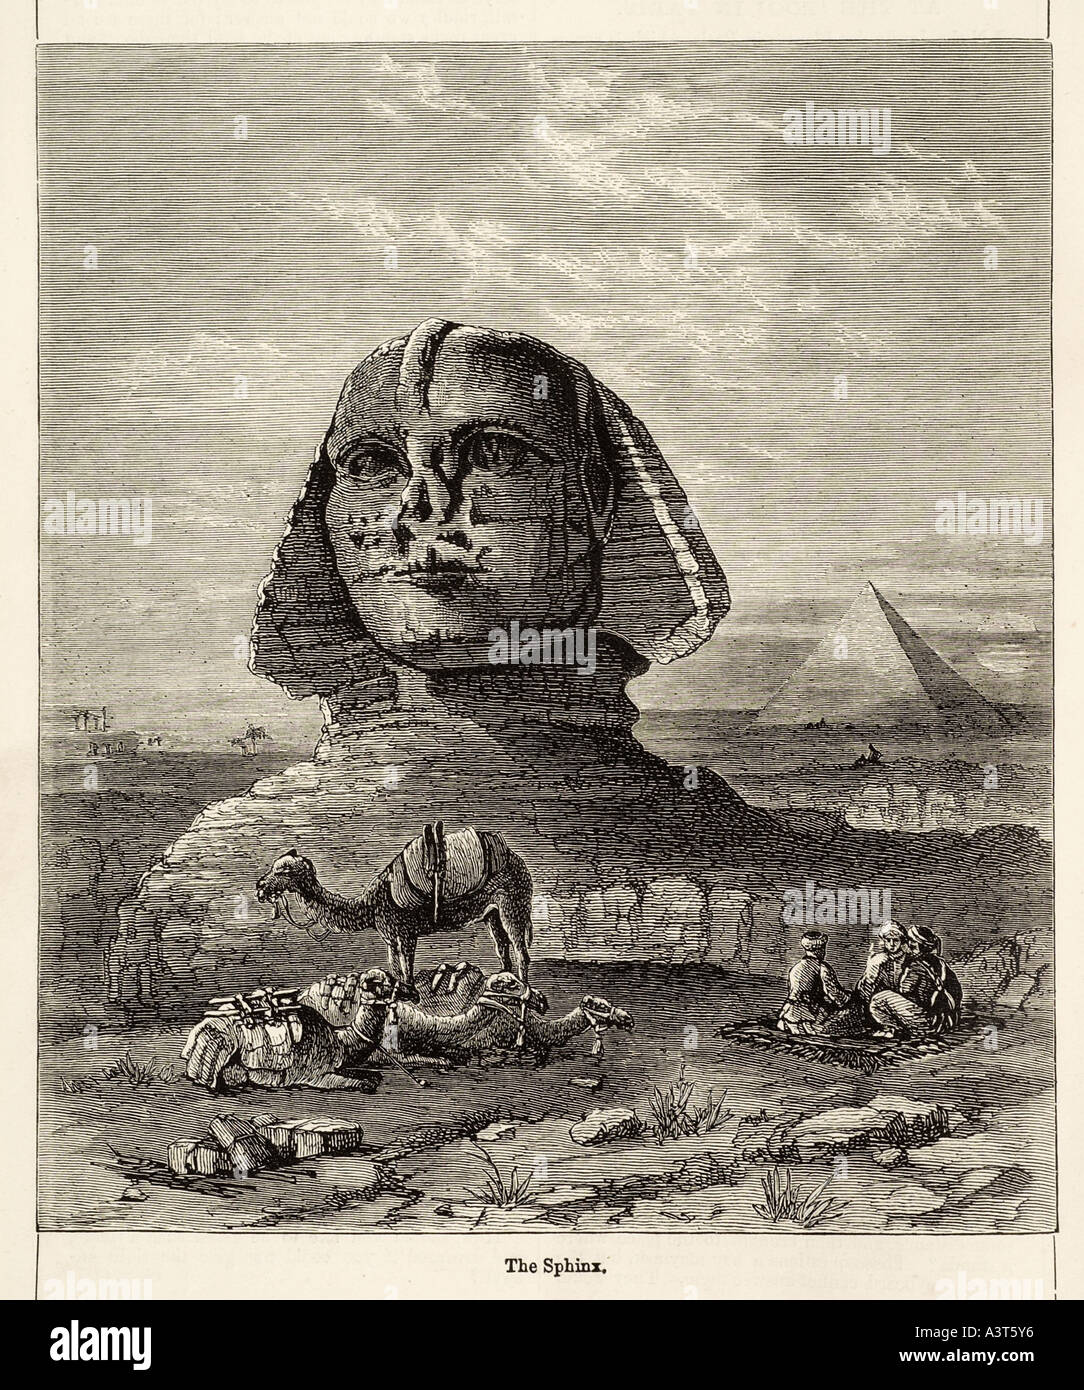 Sphinx Egypt Drawing Stock Photos & Sphinx Egypt Drawing